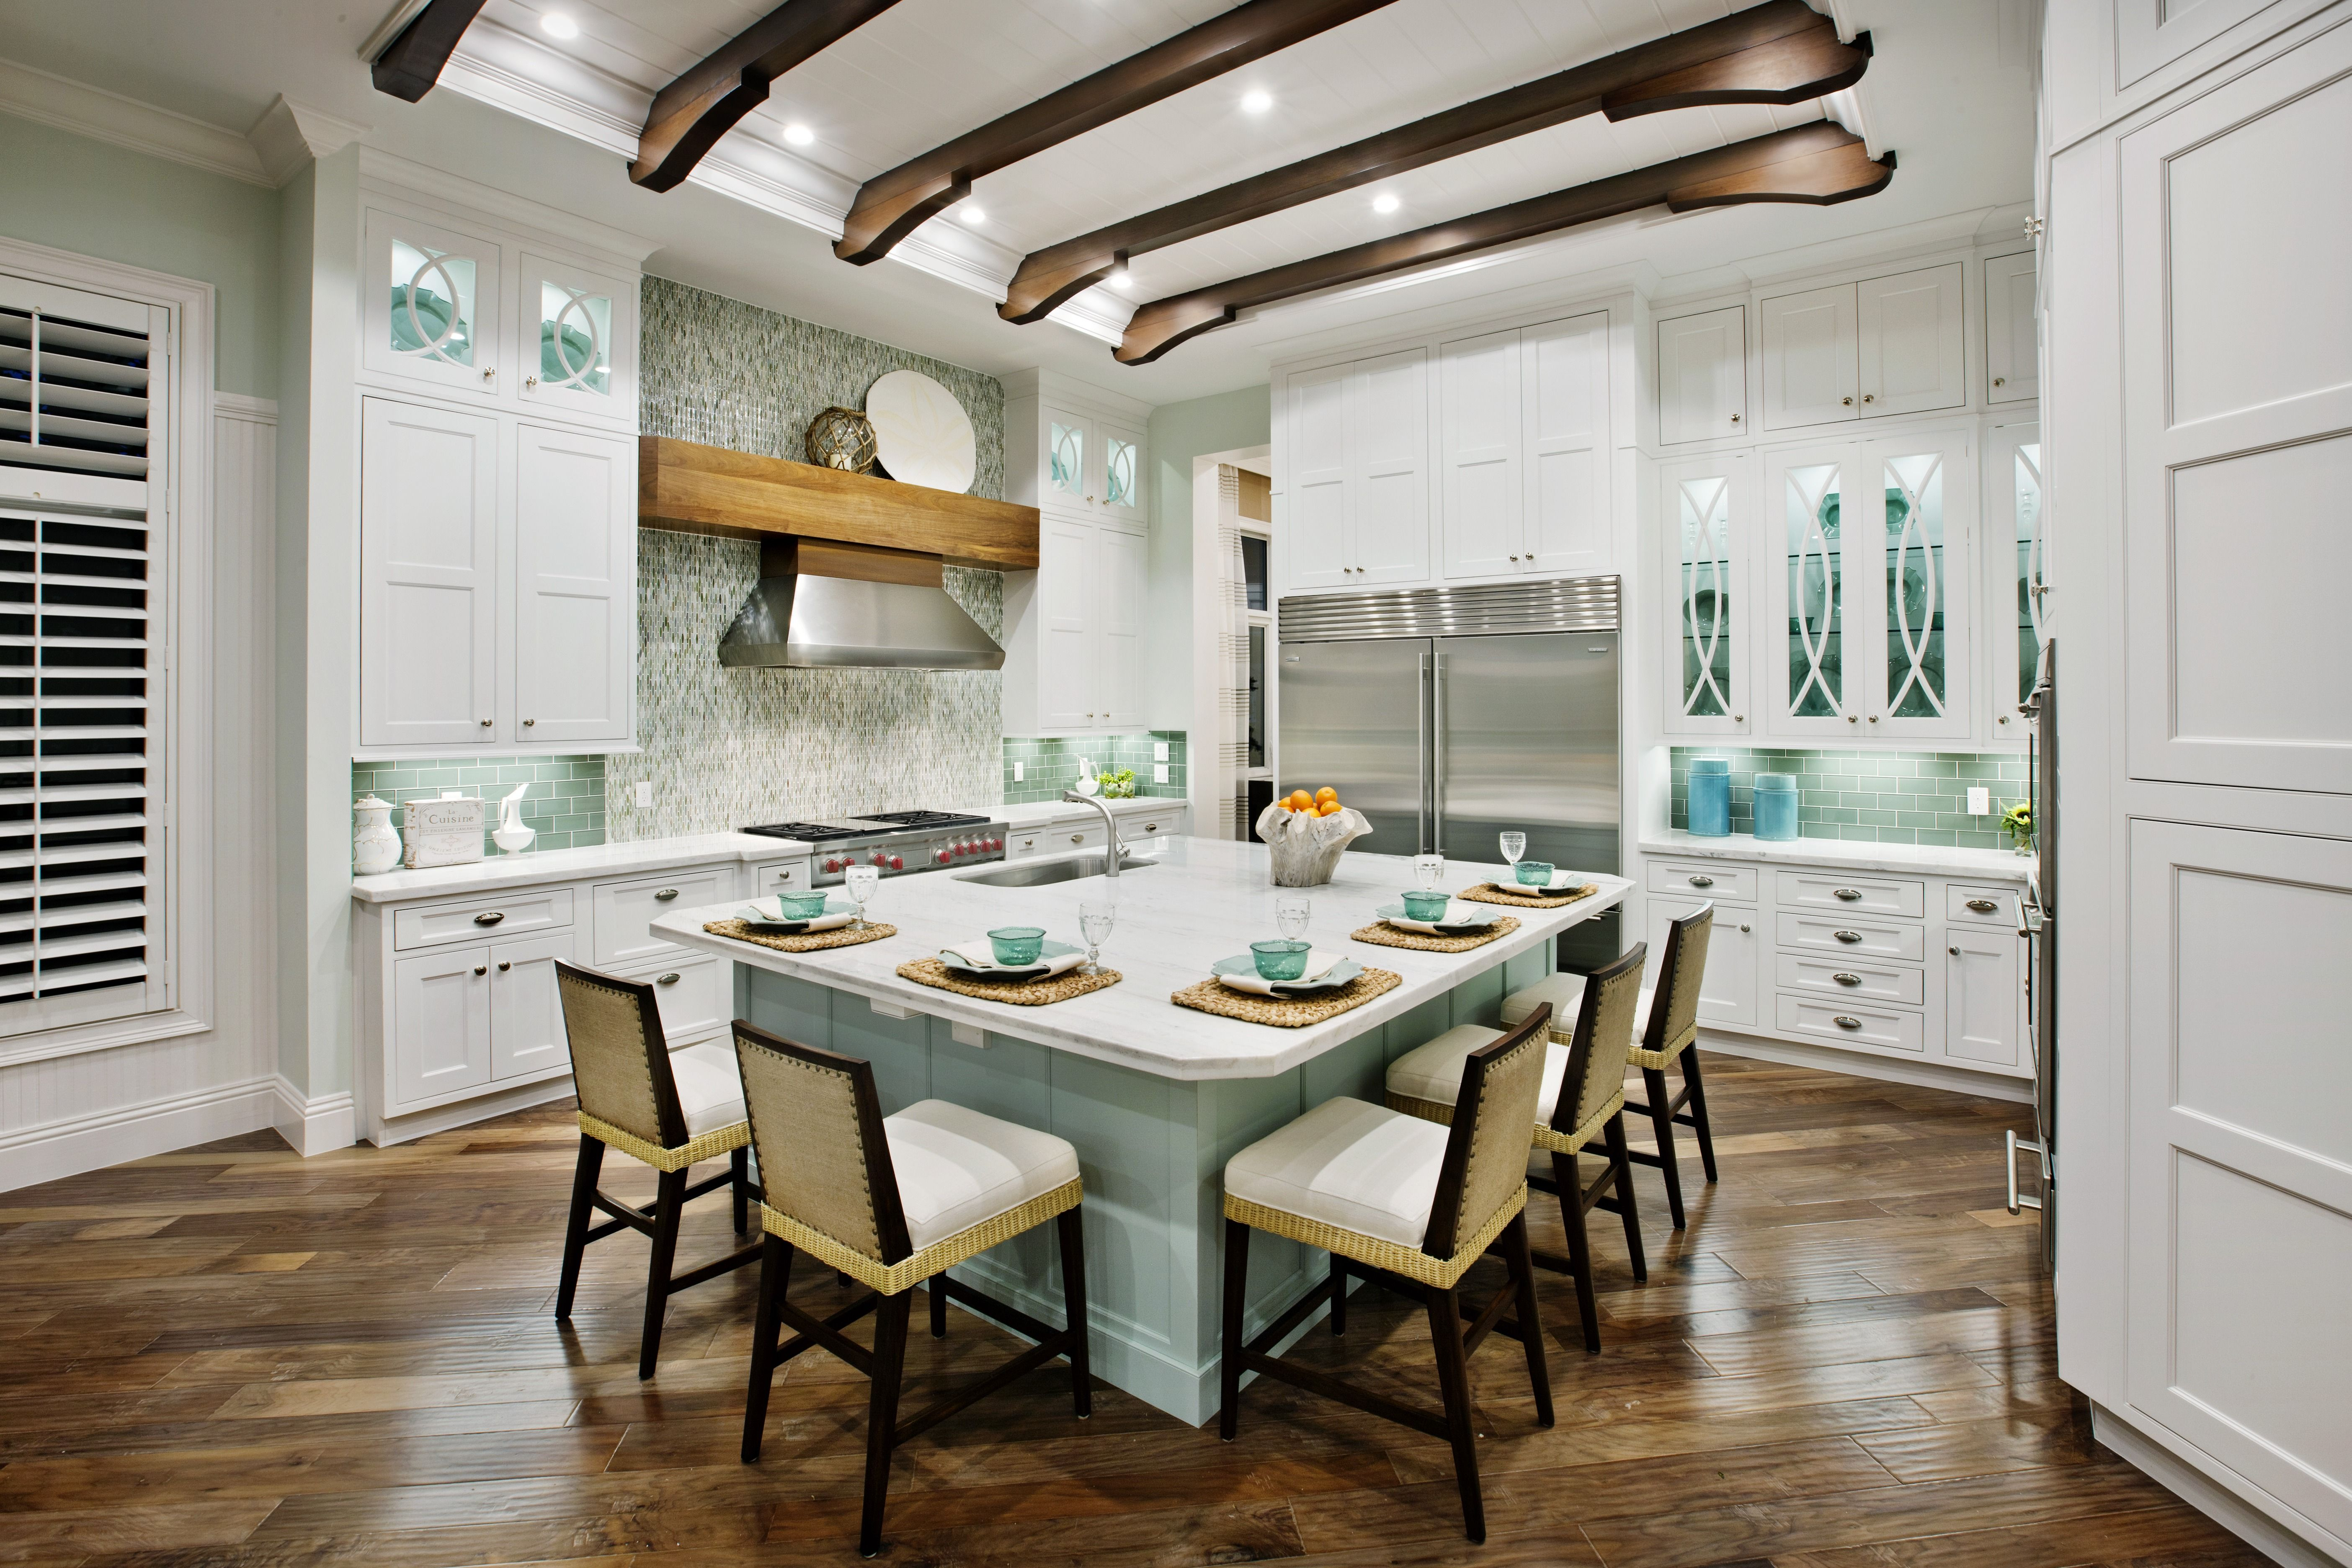 Toll Brothers At Frenchman's Harbor Fl  Kitchens  Pinterest Enchanting New Model Kitchen Design Design Ideas